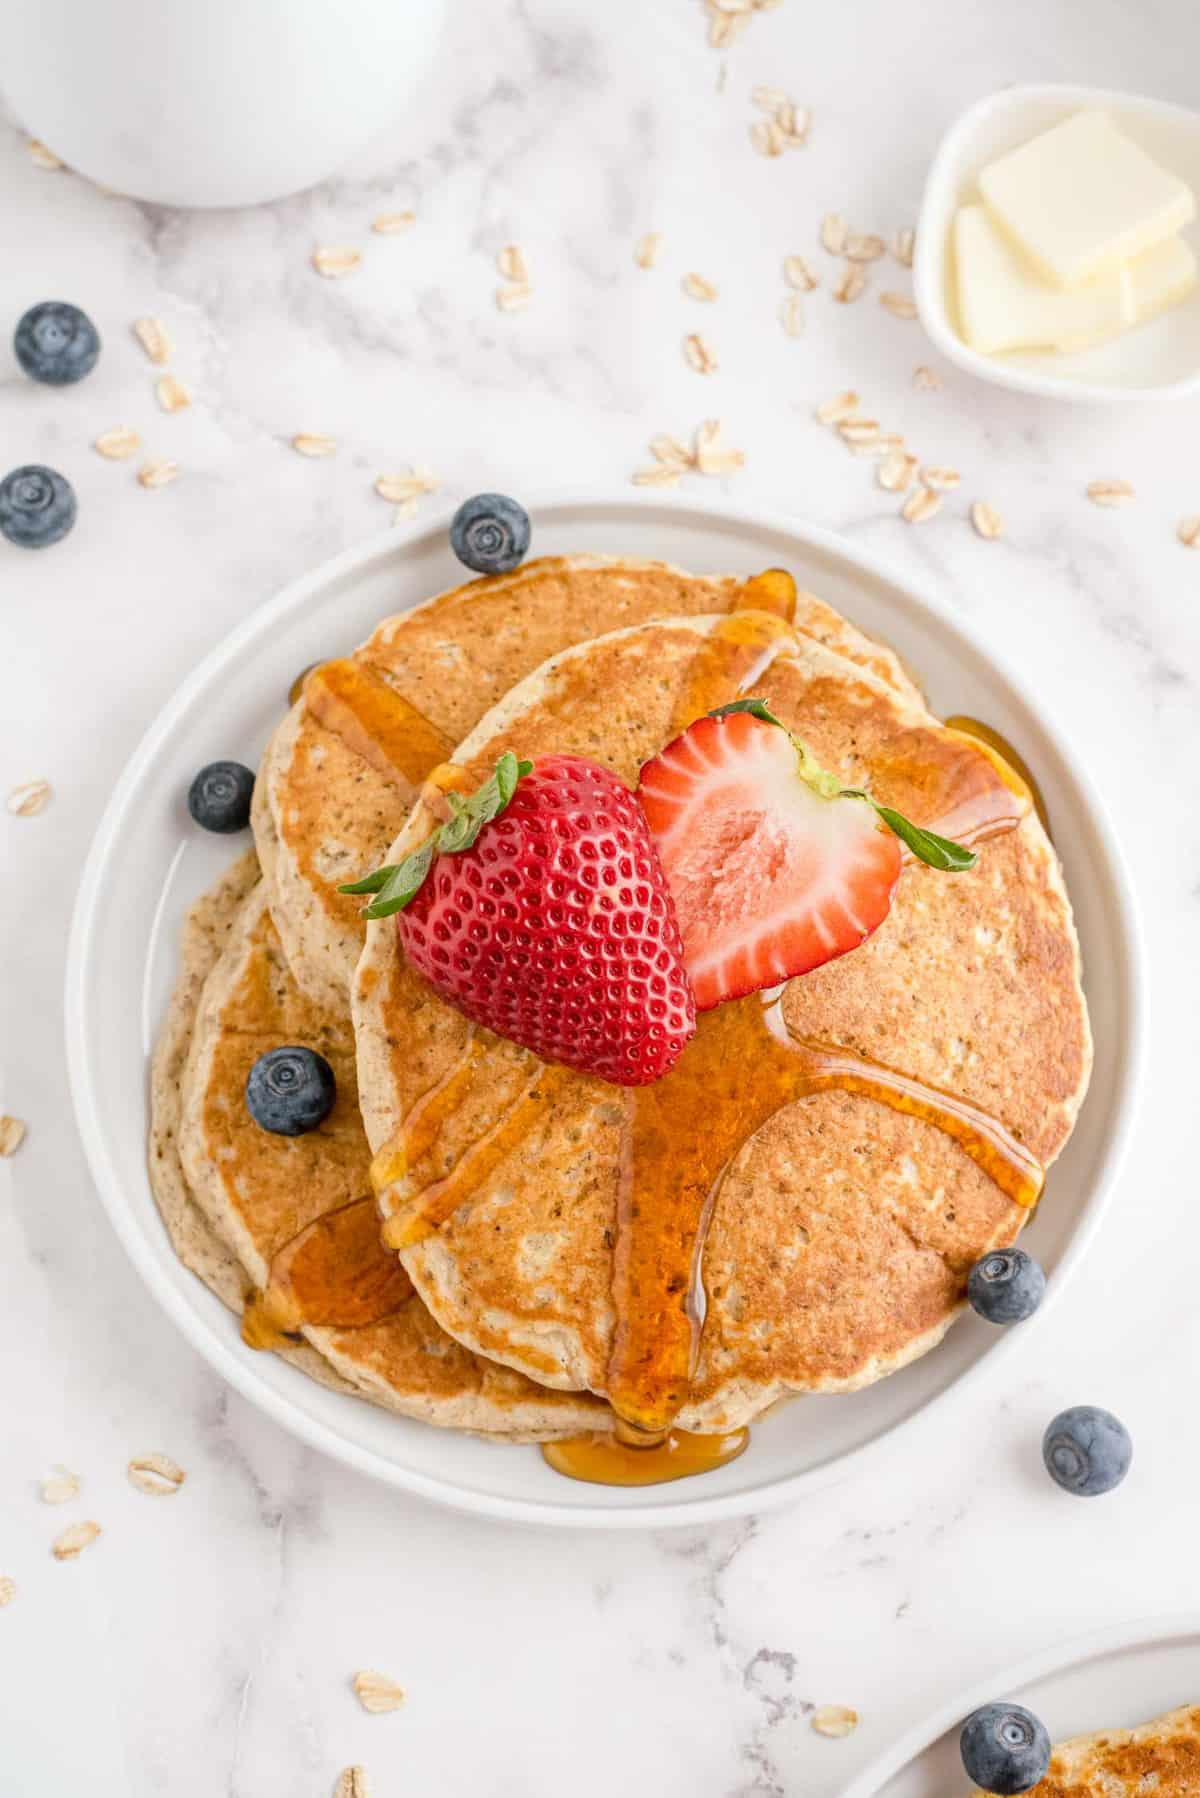 Pancakes on a white plate with strawberries and blueberries.